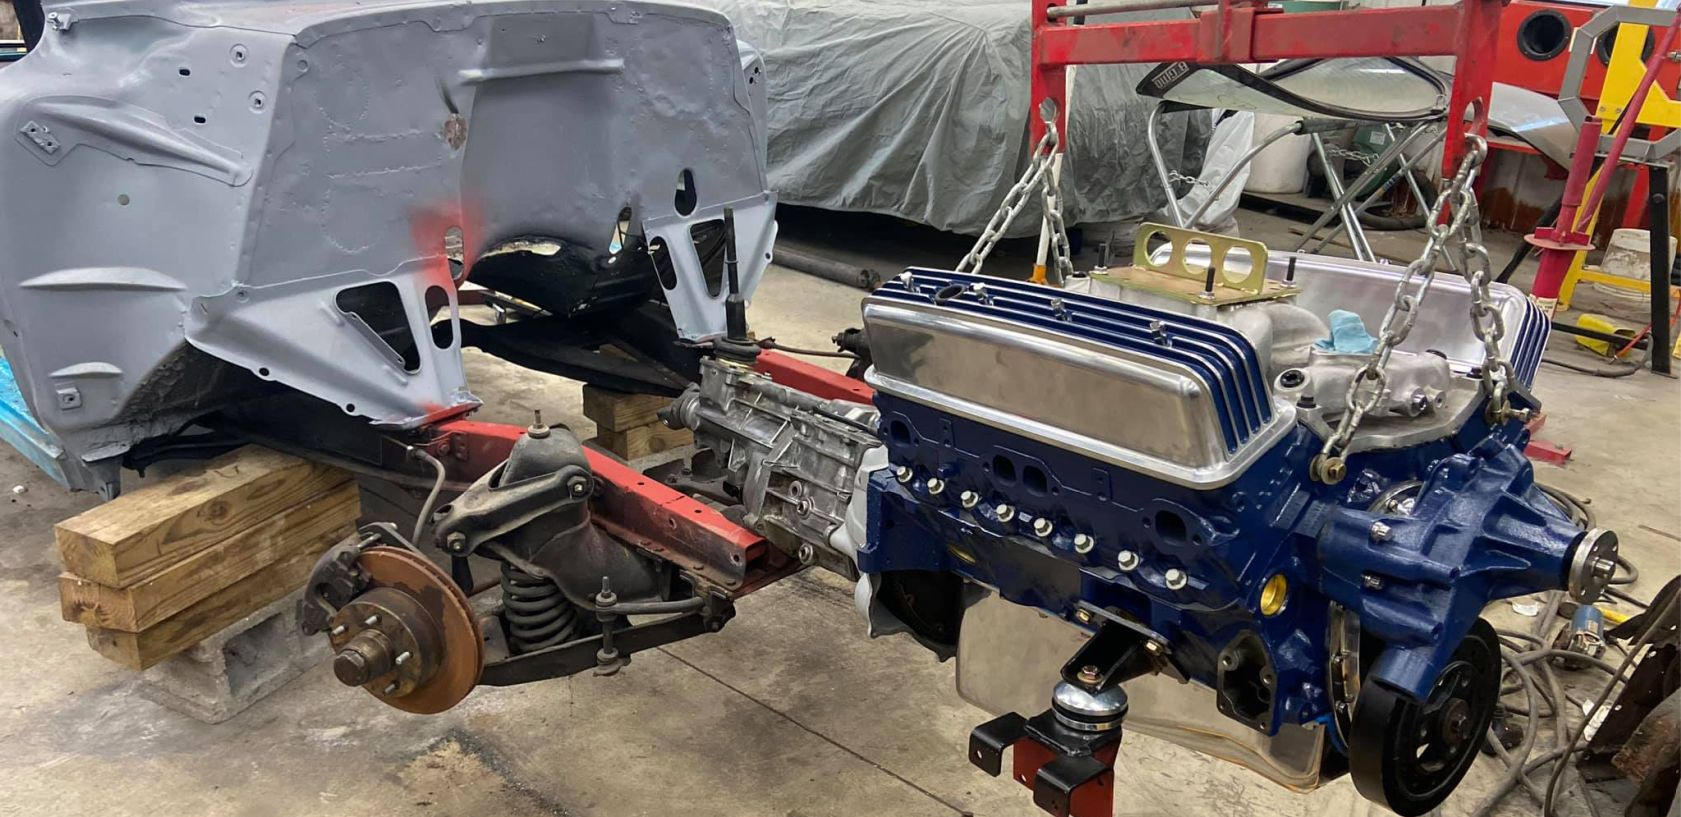 bolting everything on engine